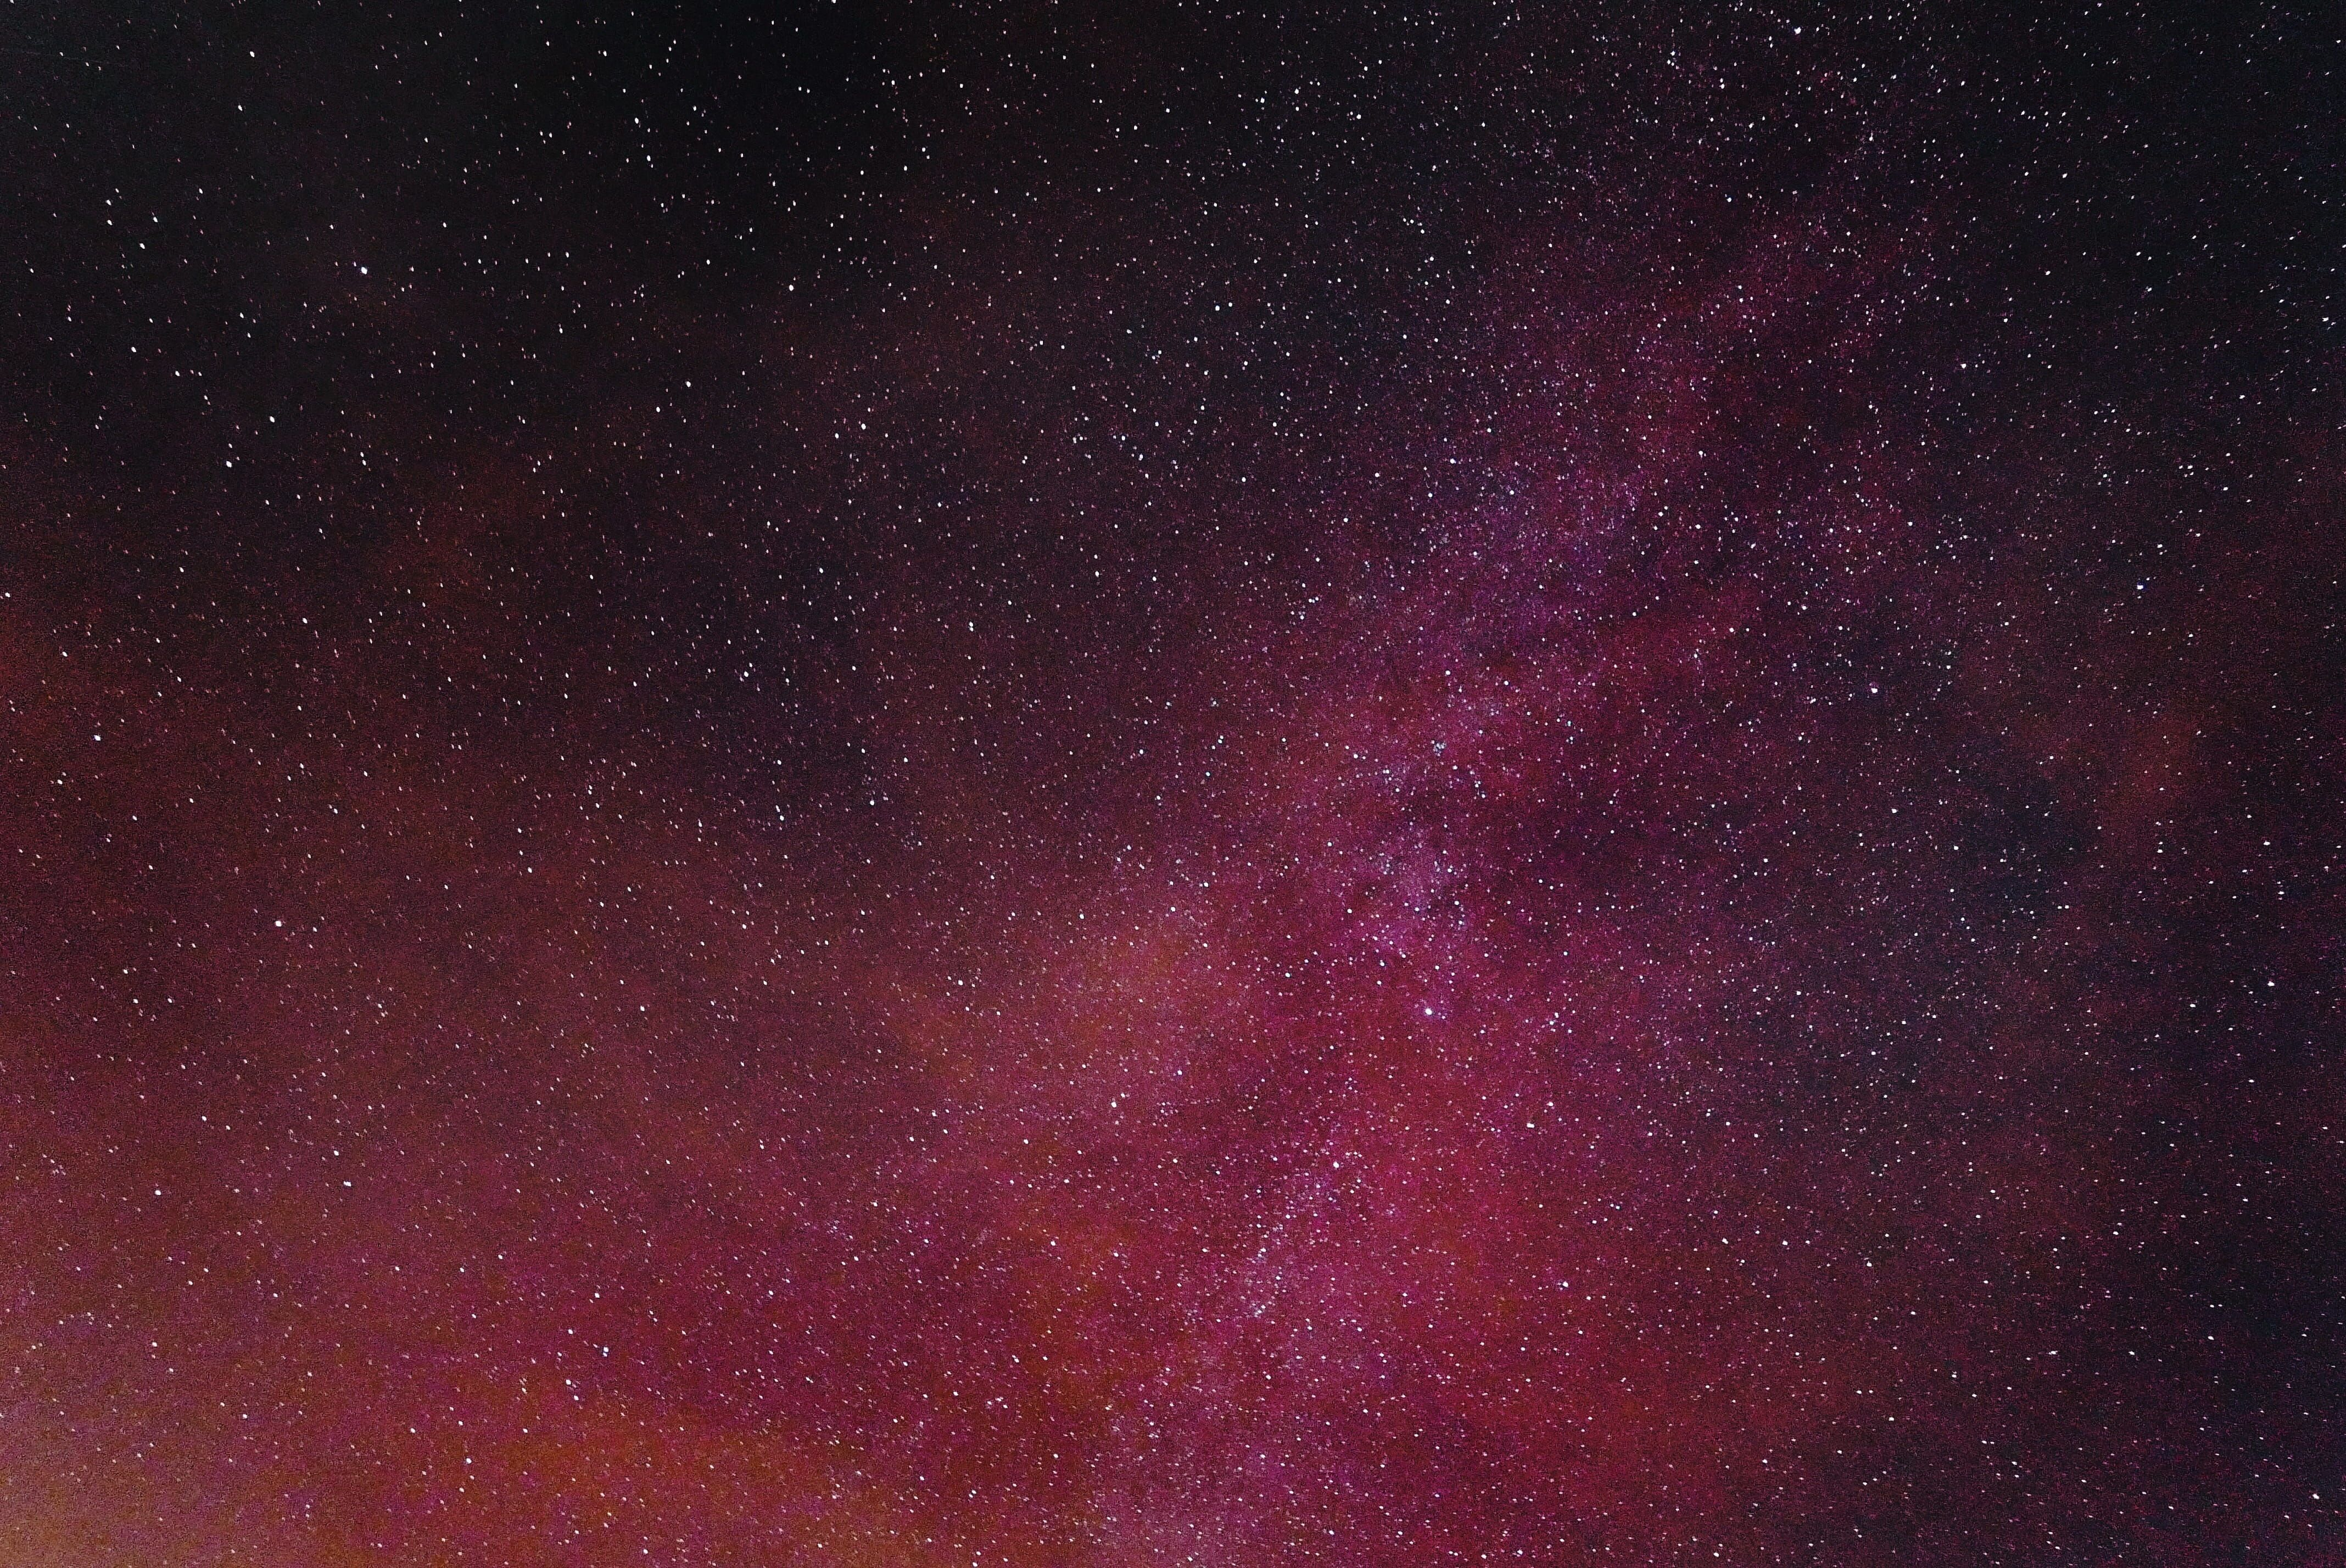 Pink Red And Black Digital Wallpaper Galaxy Wallpaper Stars Wallpaper Star Color Space Night Pink Backgrounds Astronomy Abstract Galaxy Nebula St